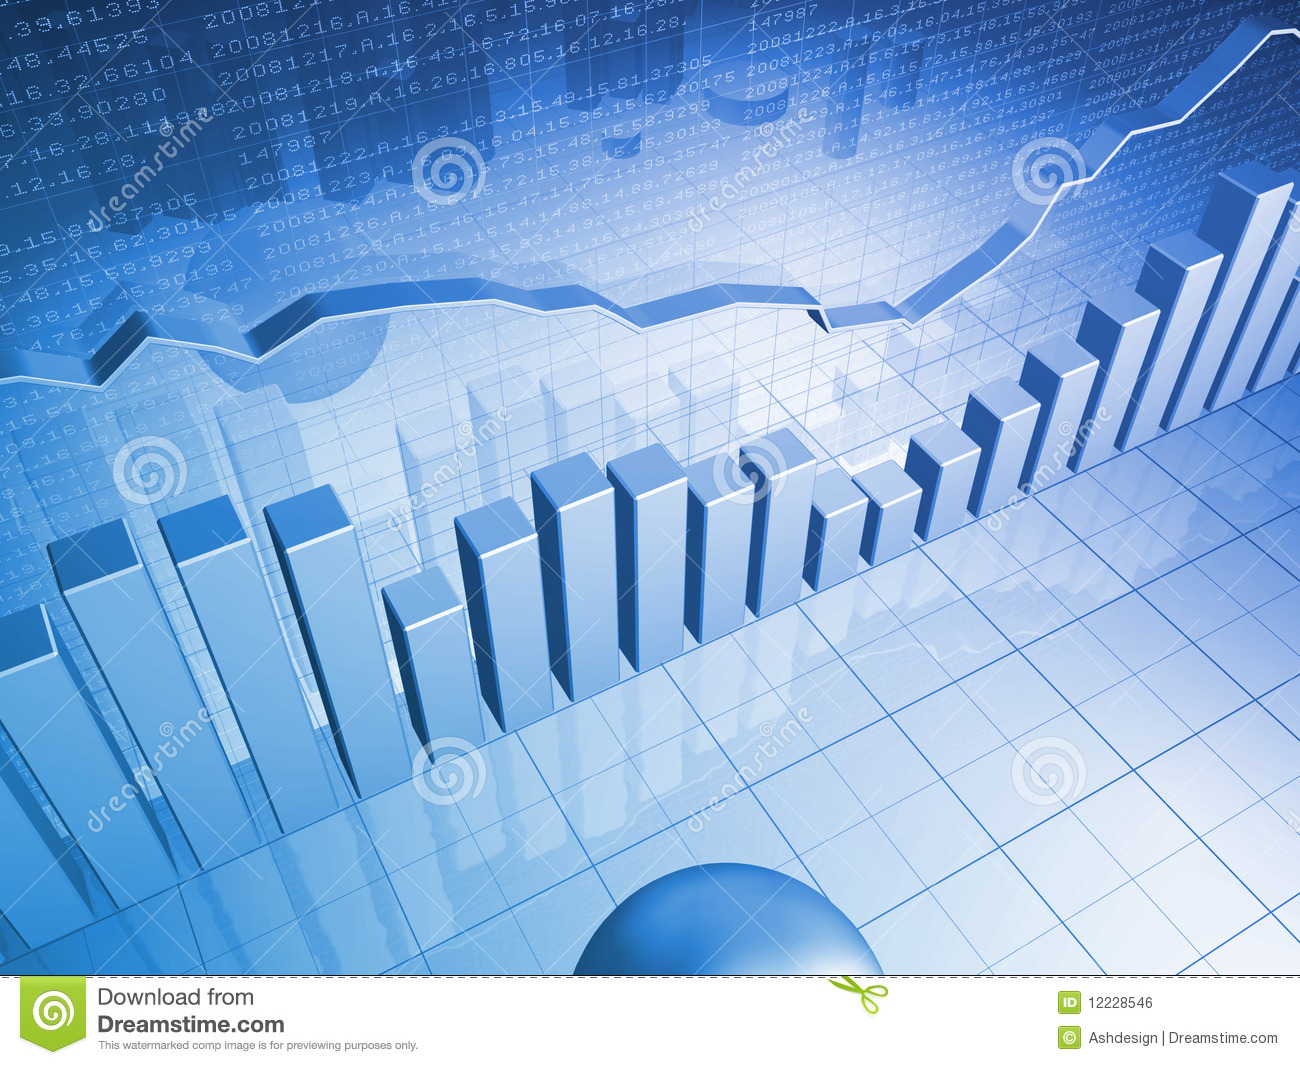 Economics Quotes Wallpapers Financial Graph With Bar Charts Royalty Free Stock Image